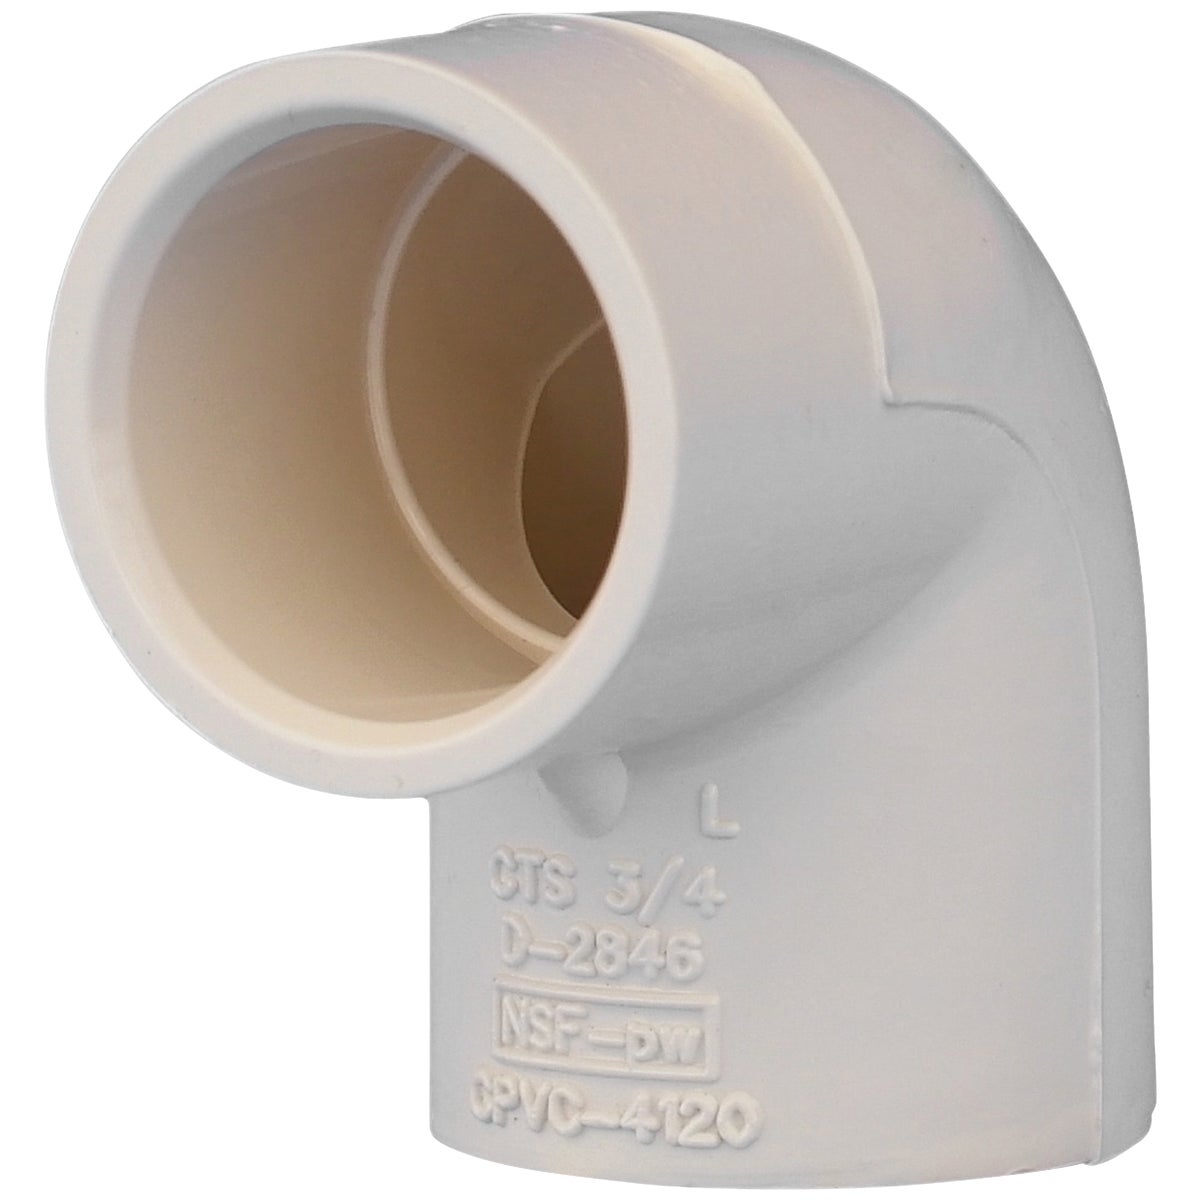 "3/4"" CPVC 90D ELBOW - 50707 by Genova Inc"